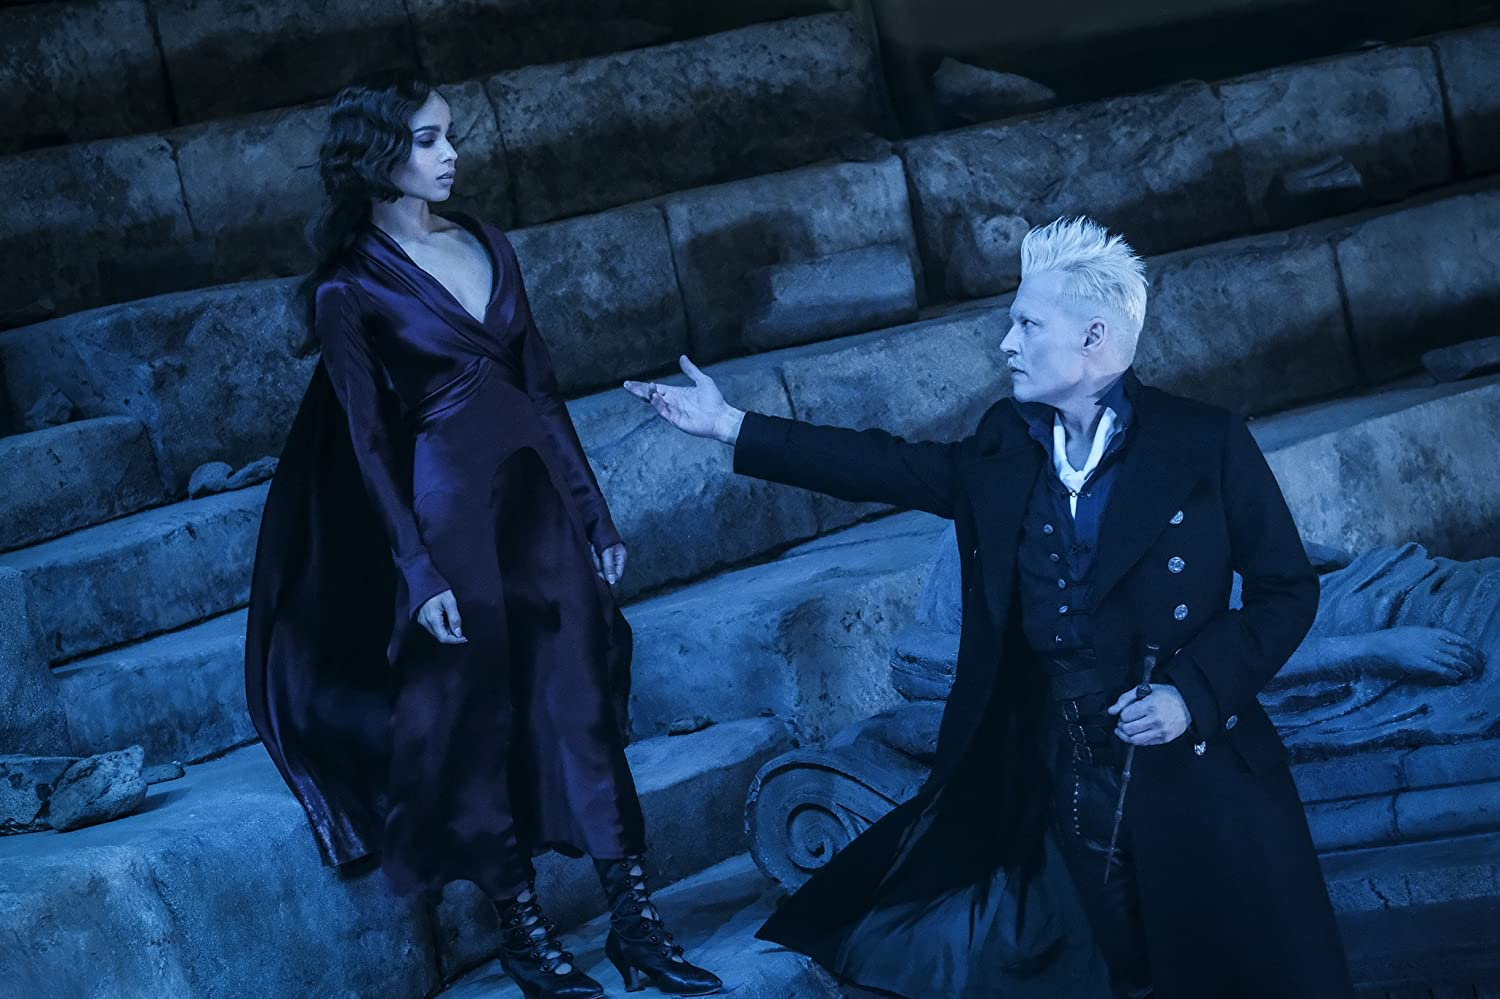 Johnny Depp and Zoë Kravitz in Fantastic Beasts: The Crimes of Grindelwald (2018)